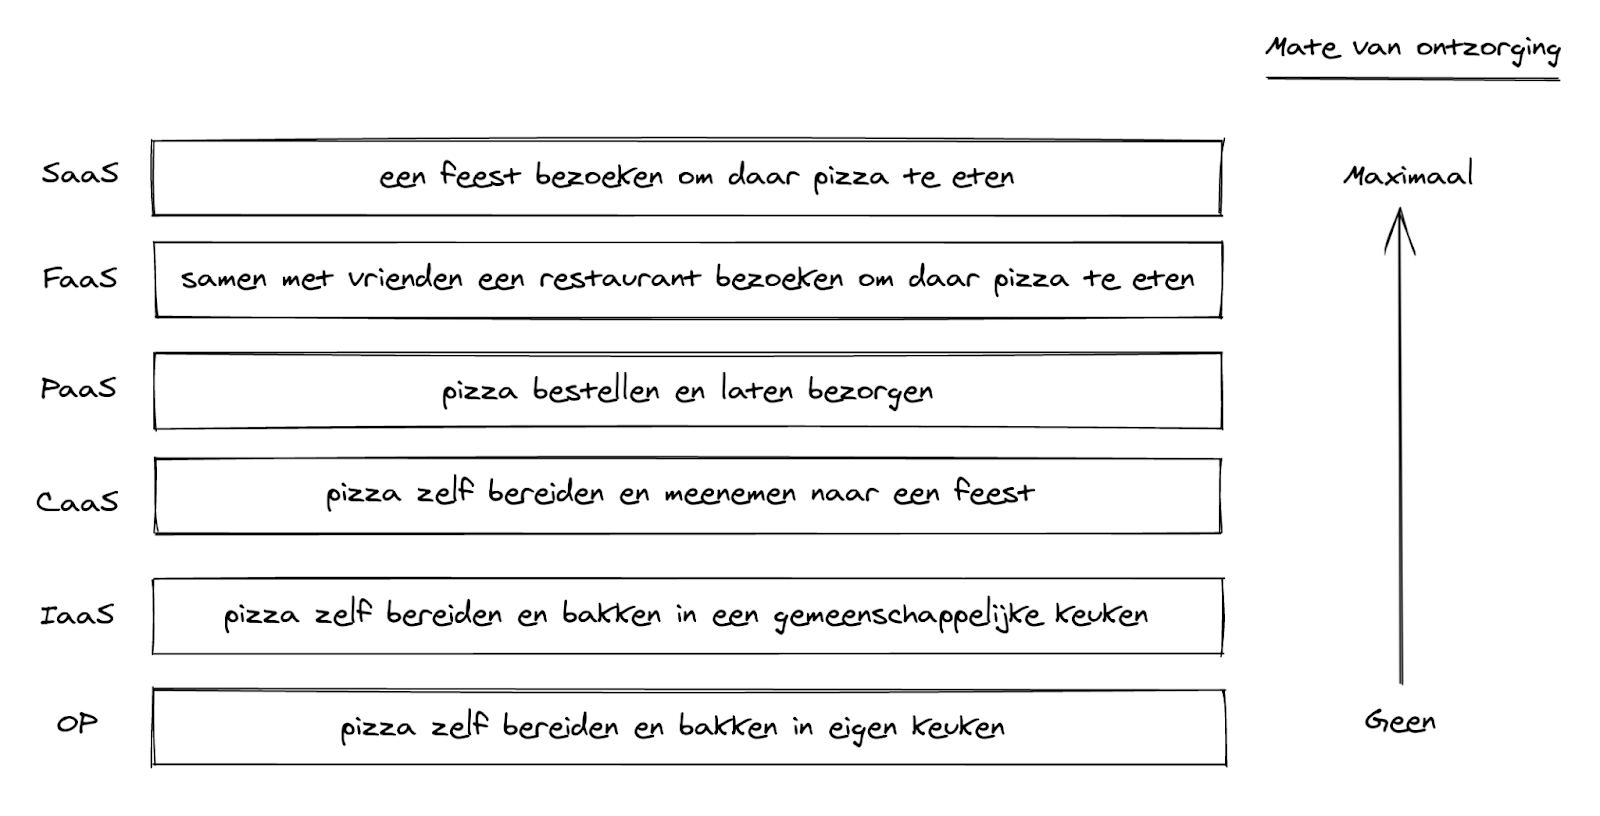 Pizza as a service 2.0 model